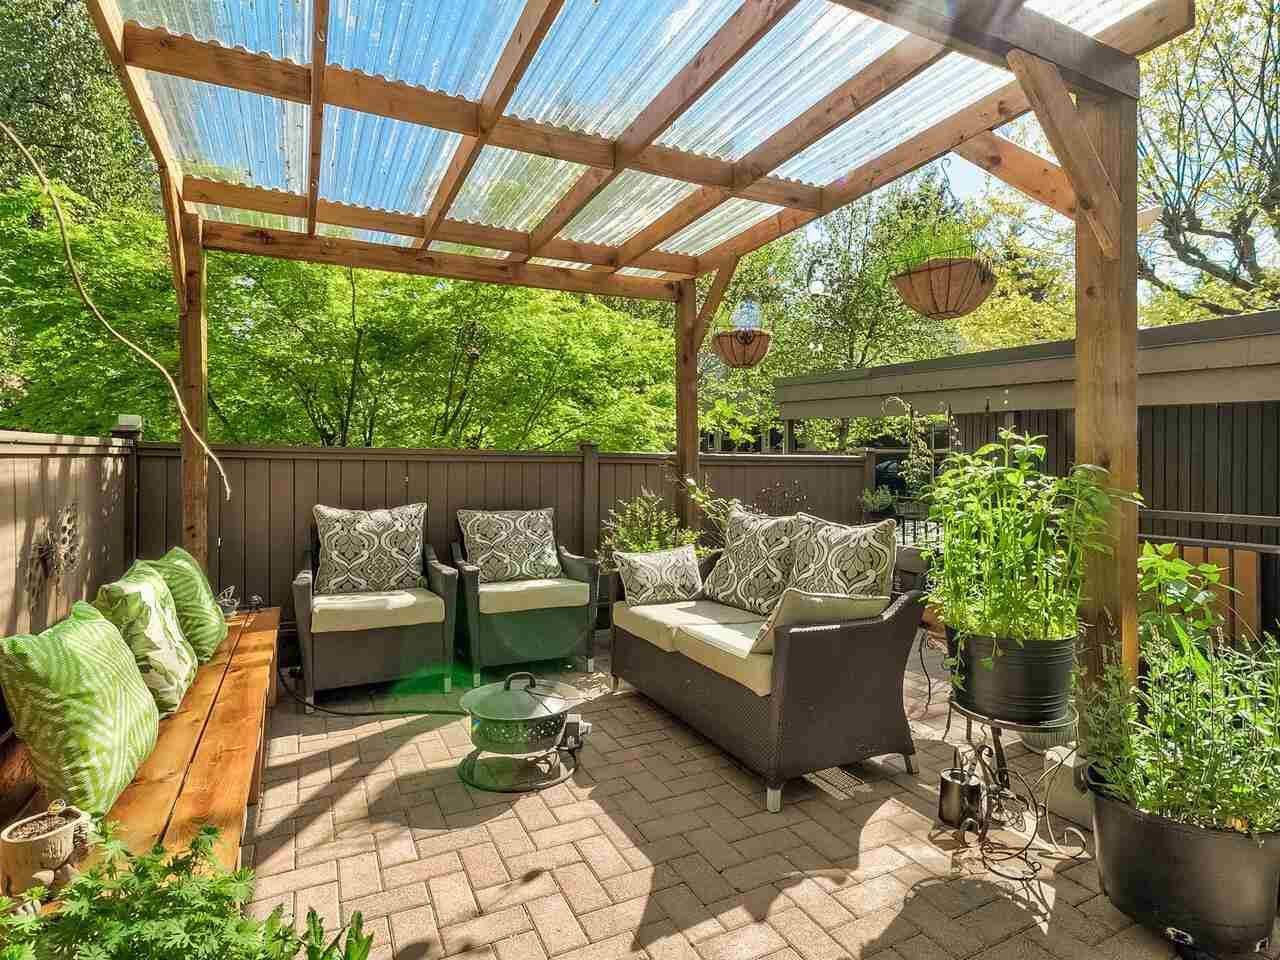 """Main Photo: 4787 DRIFTWOOD Place in Burnaby: Greentree Village Townhouse for sale in """"GreenTree Village"""" (Burnaby South)  : MLS®# R2576696"""